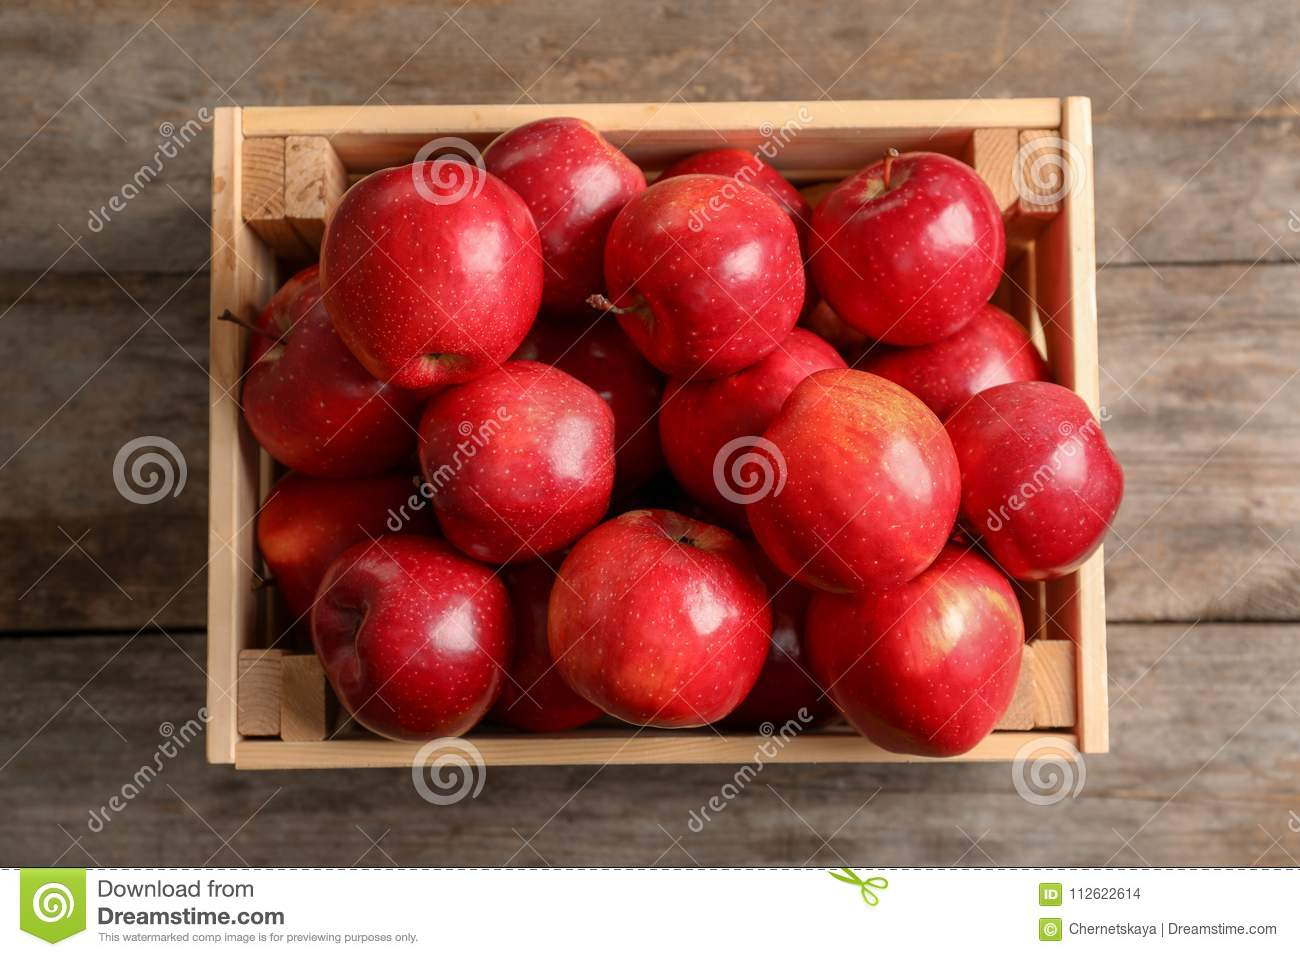 Wooden crate with fresh red apples on table